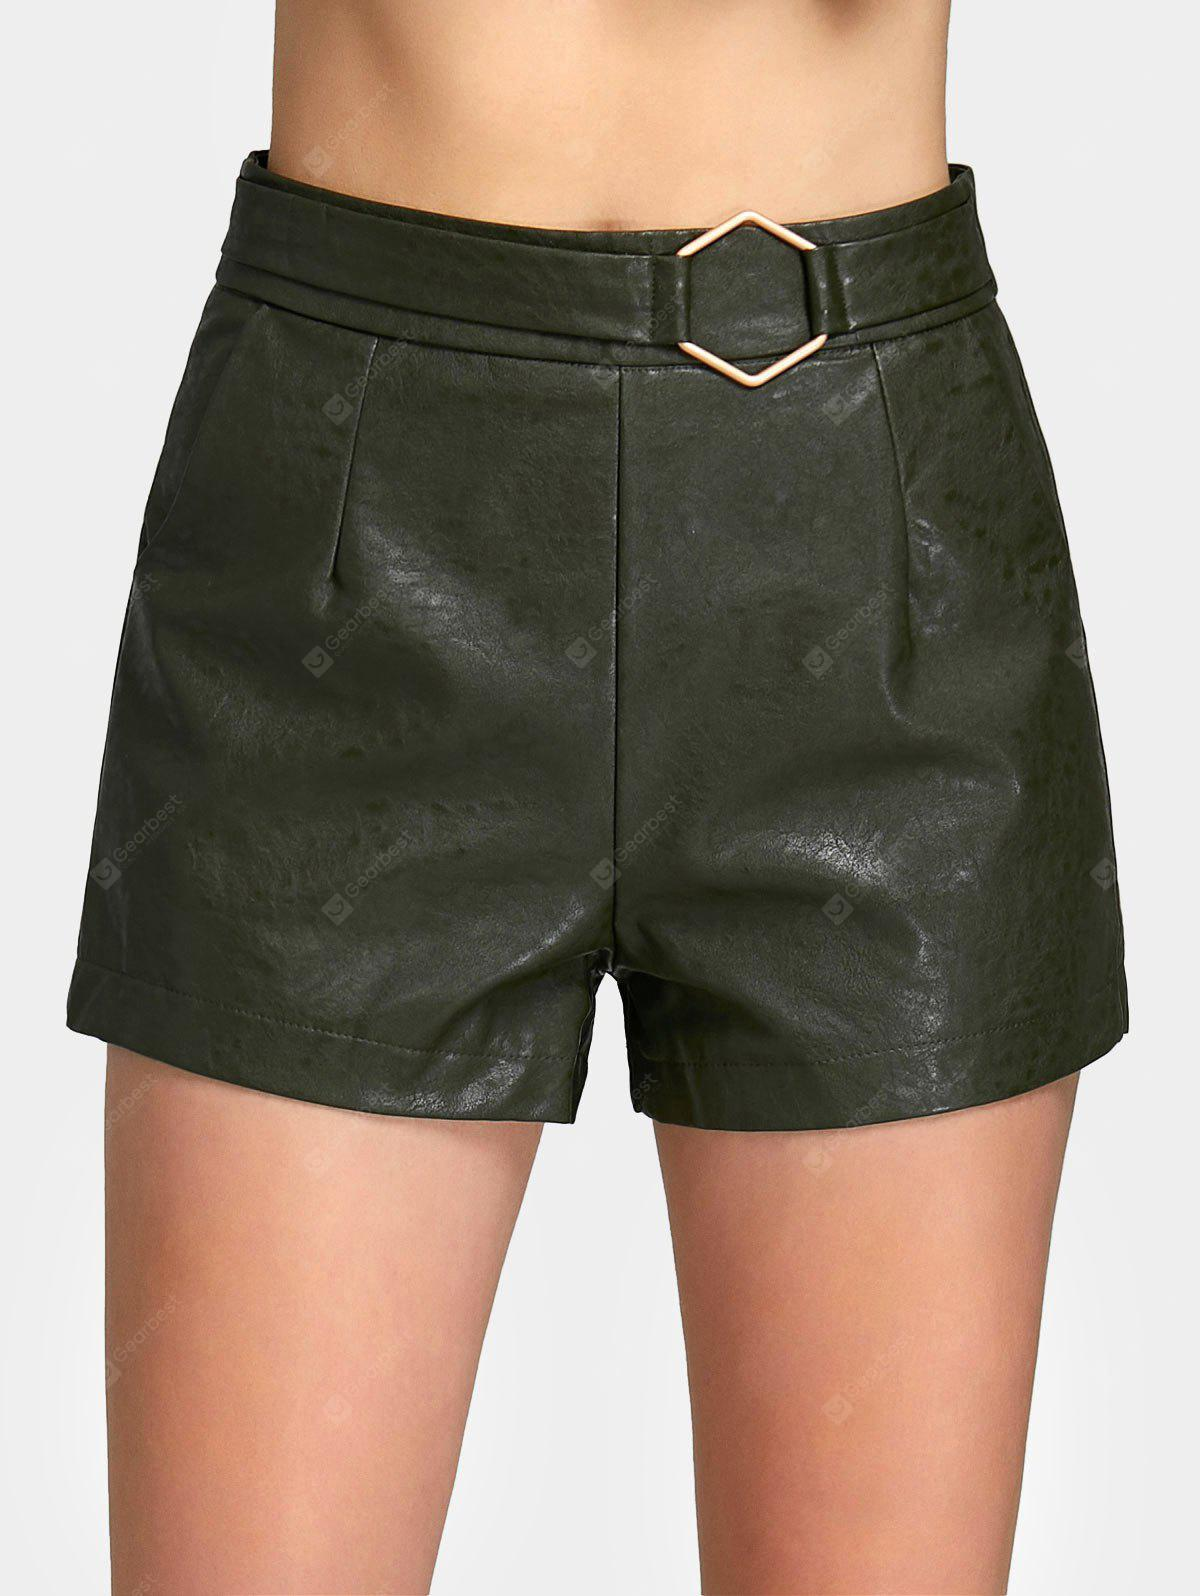 ARMY GREEN M Metal Geometry PU Leather High Waist Shorts